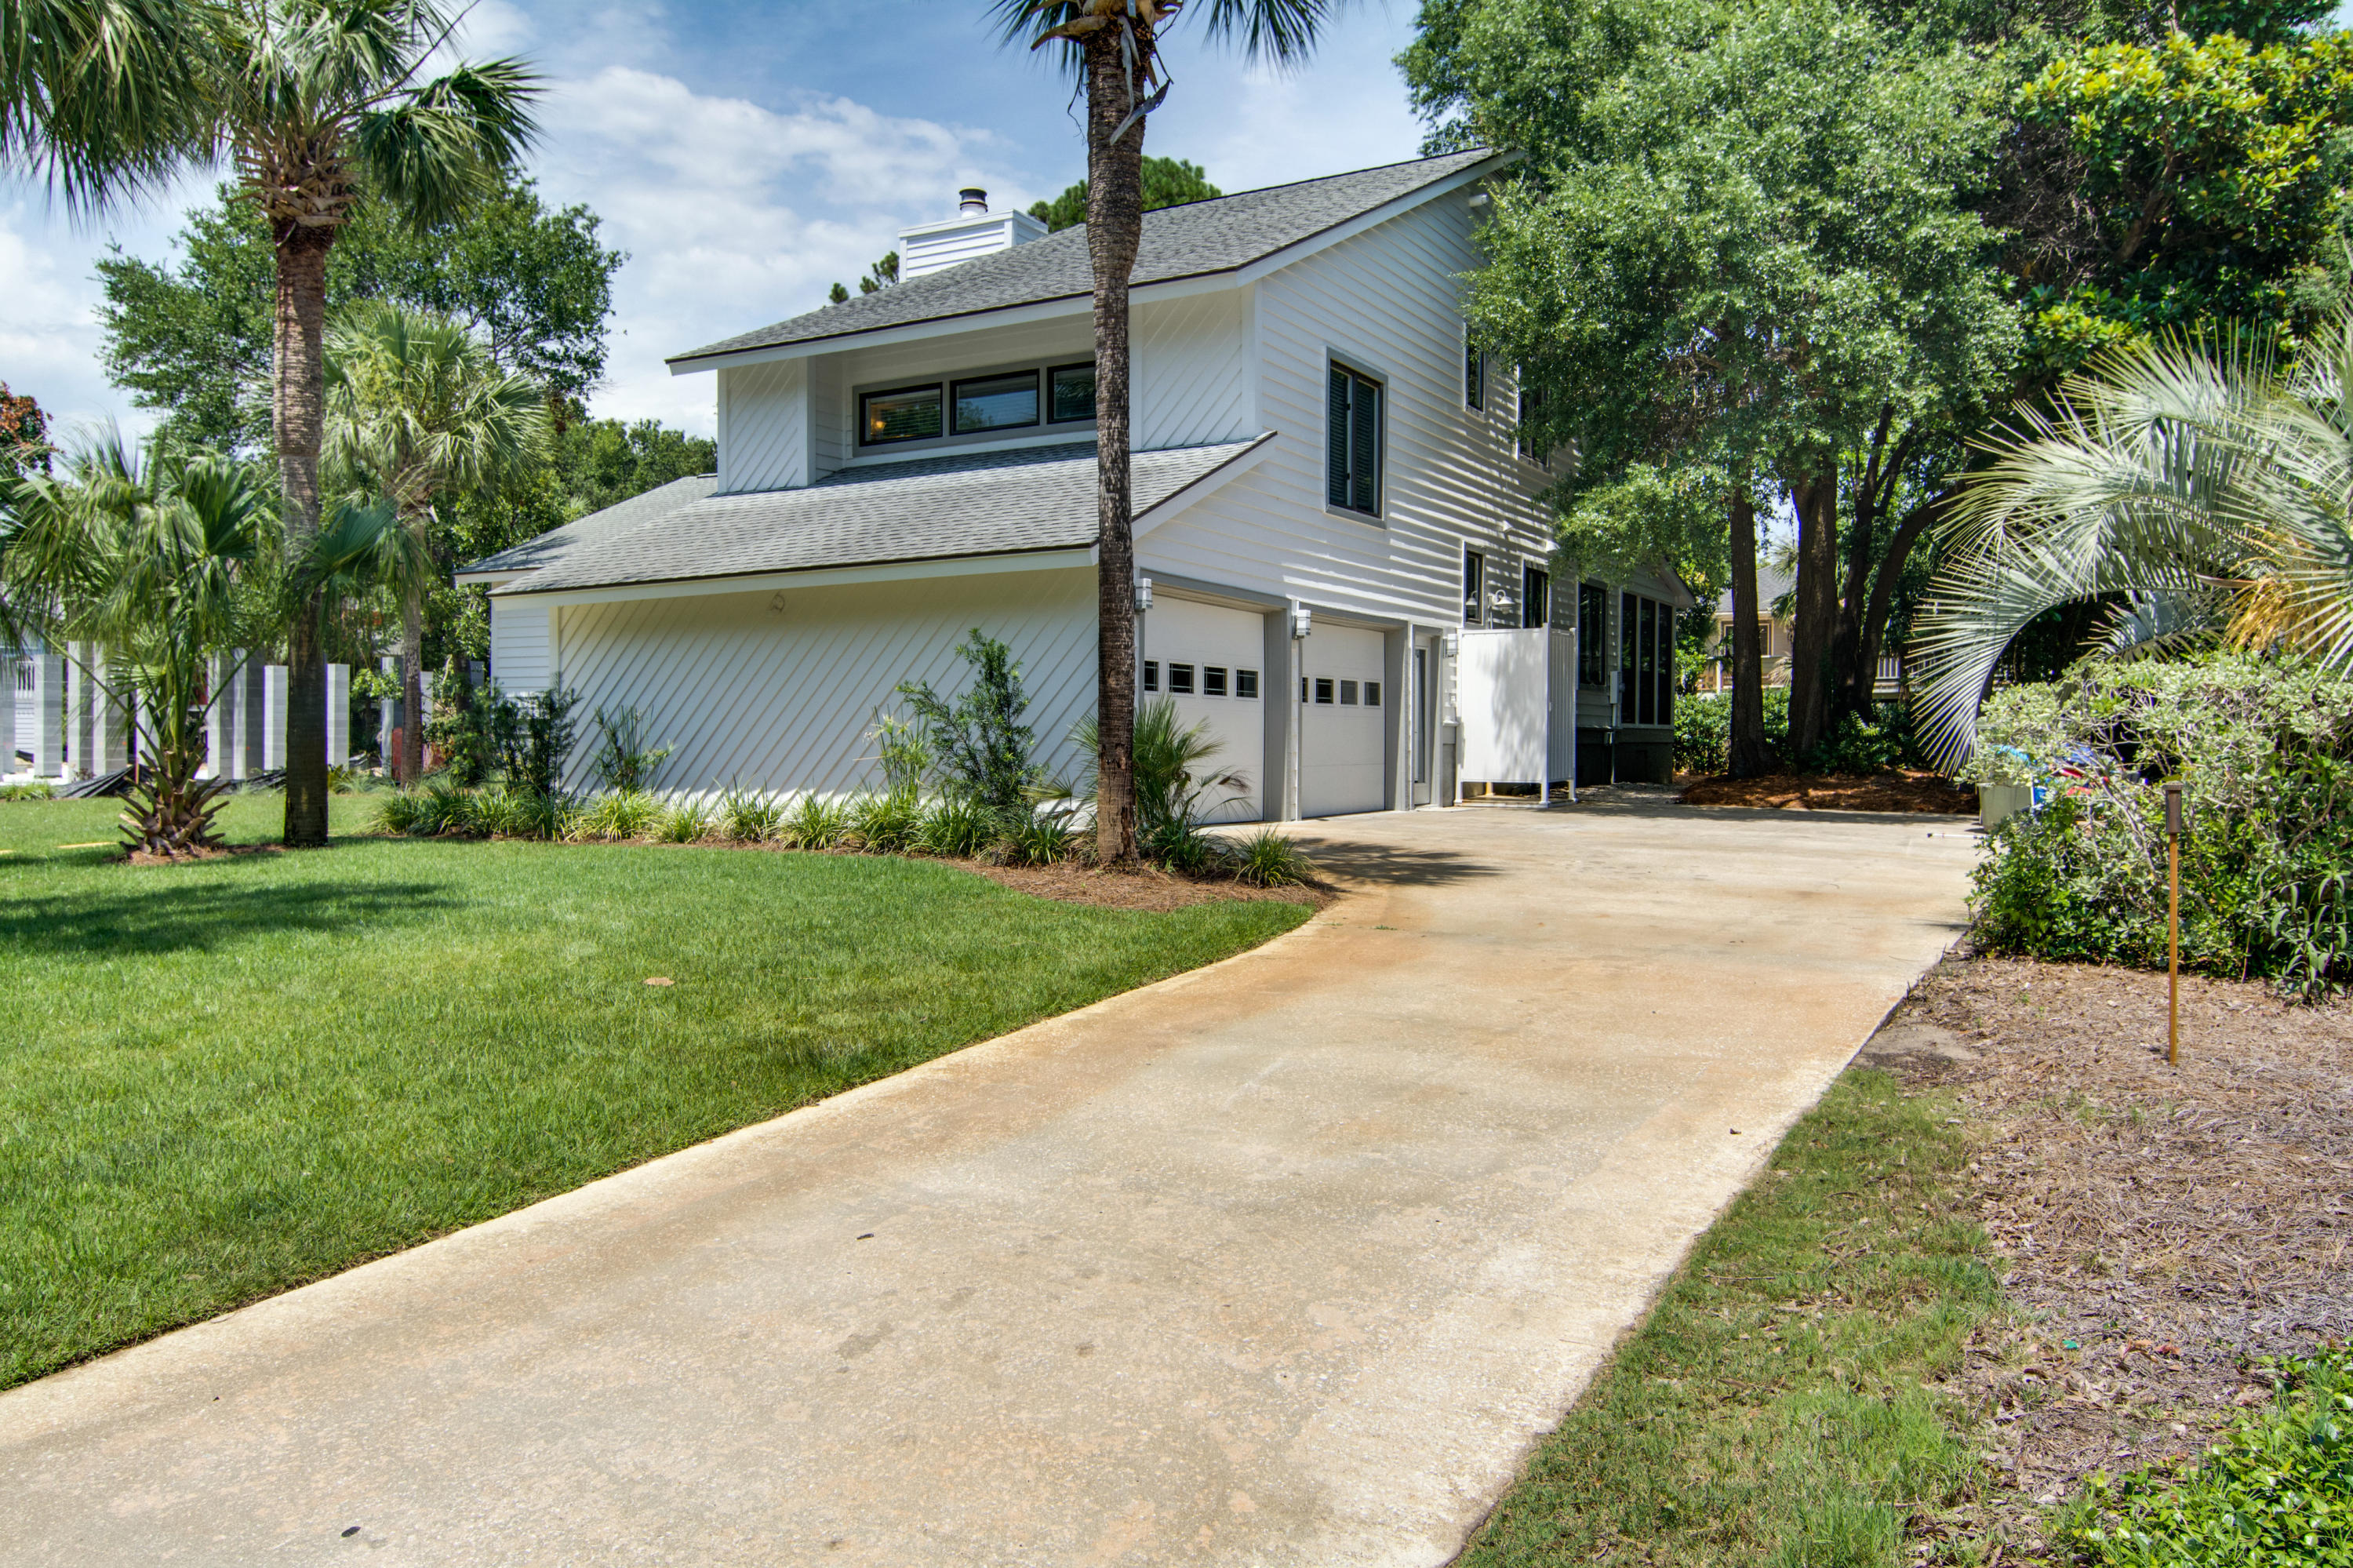 Photo of 20 42nd Ave, Isle of Palms, SC 29451